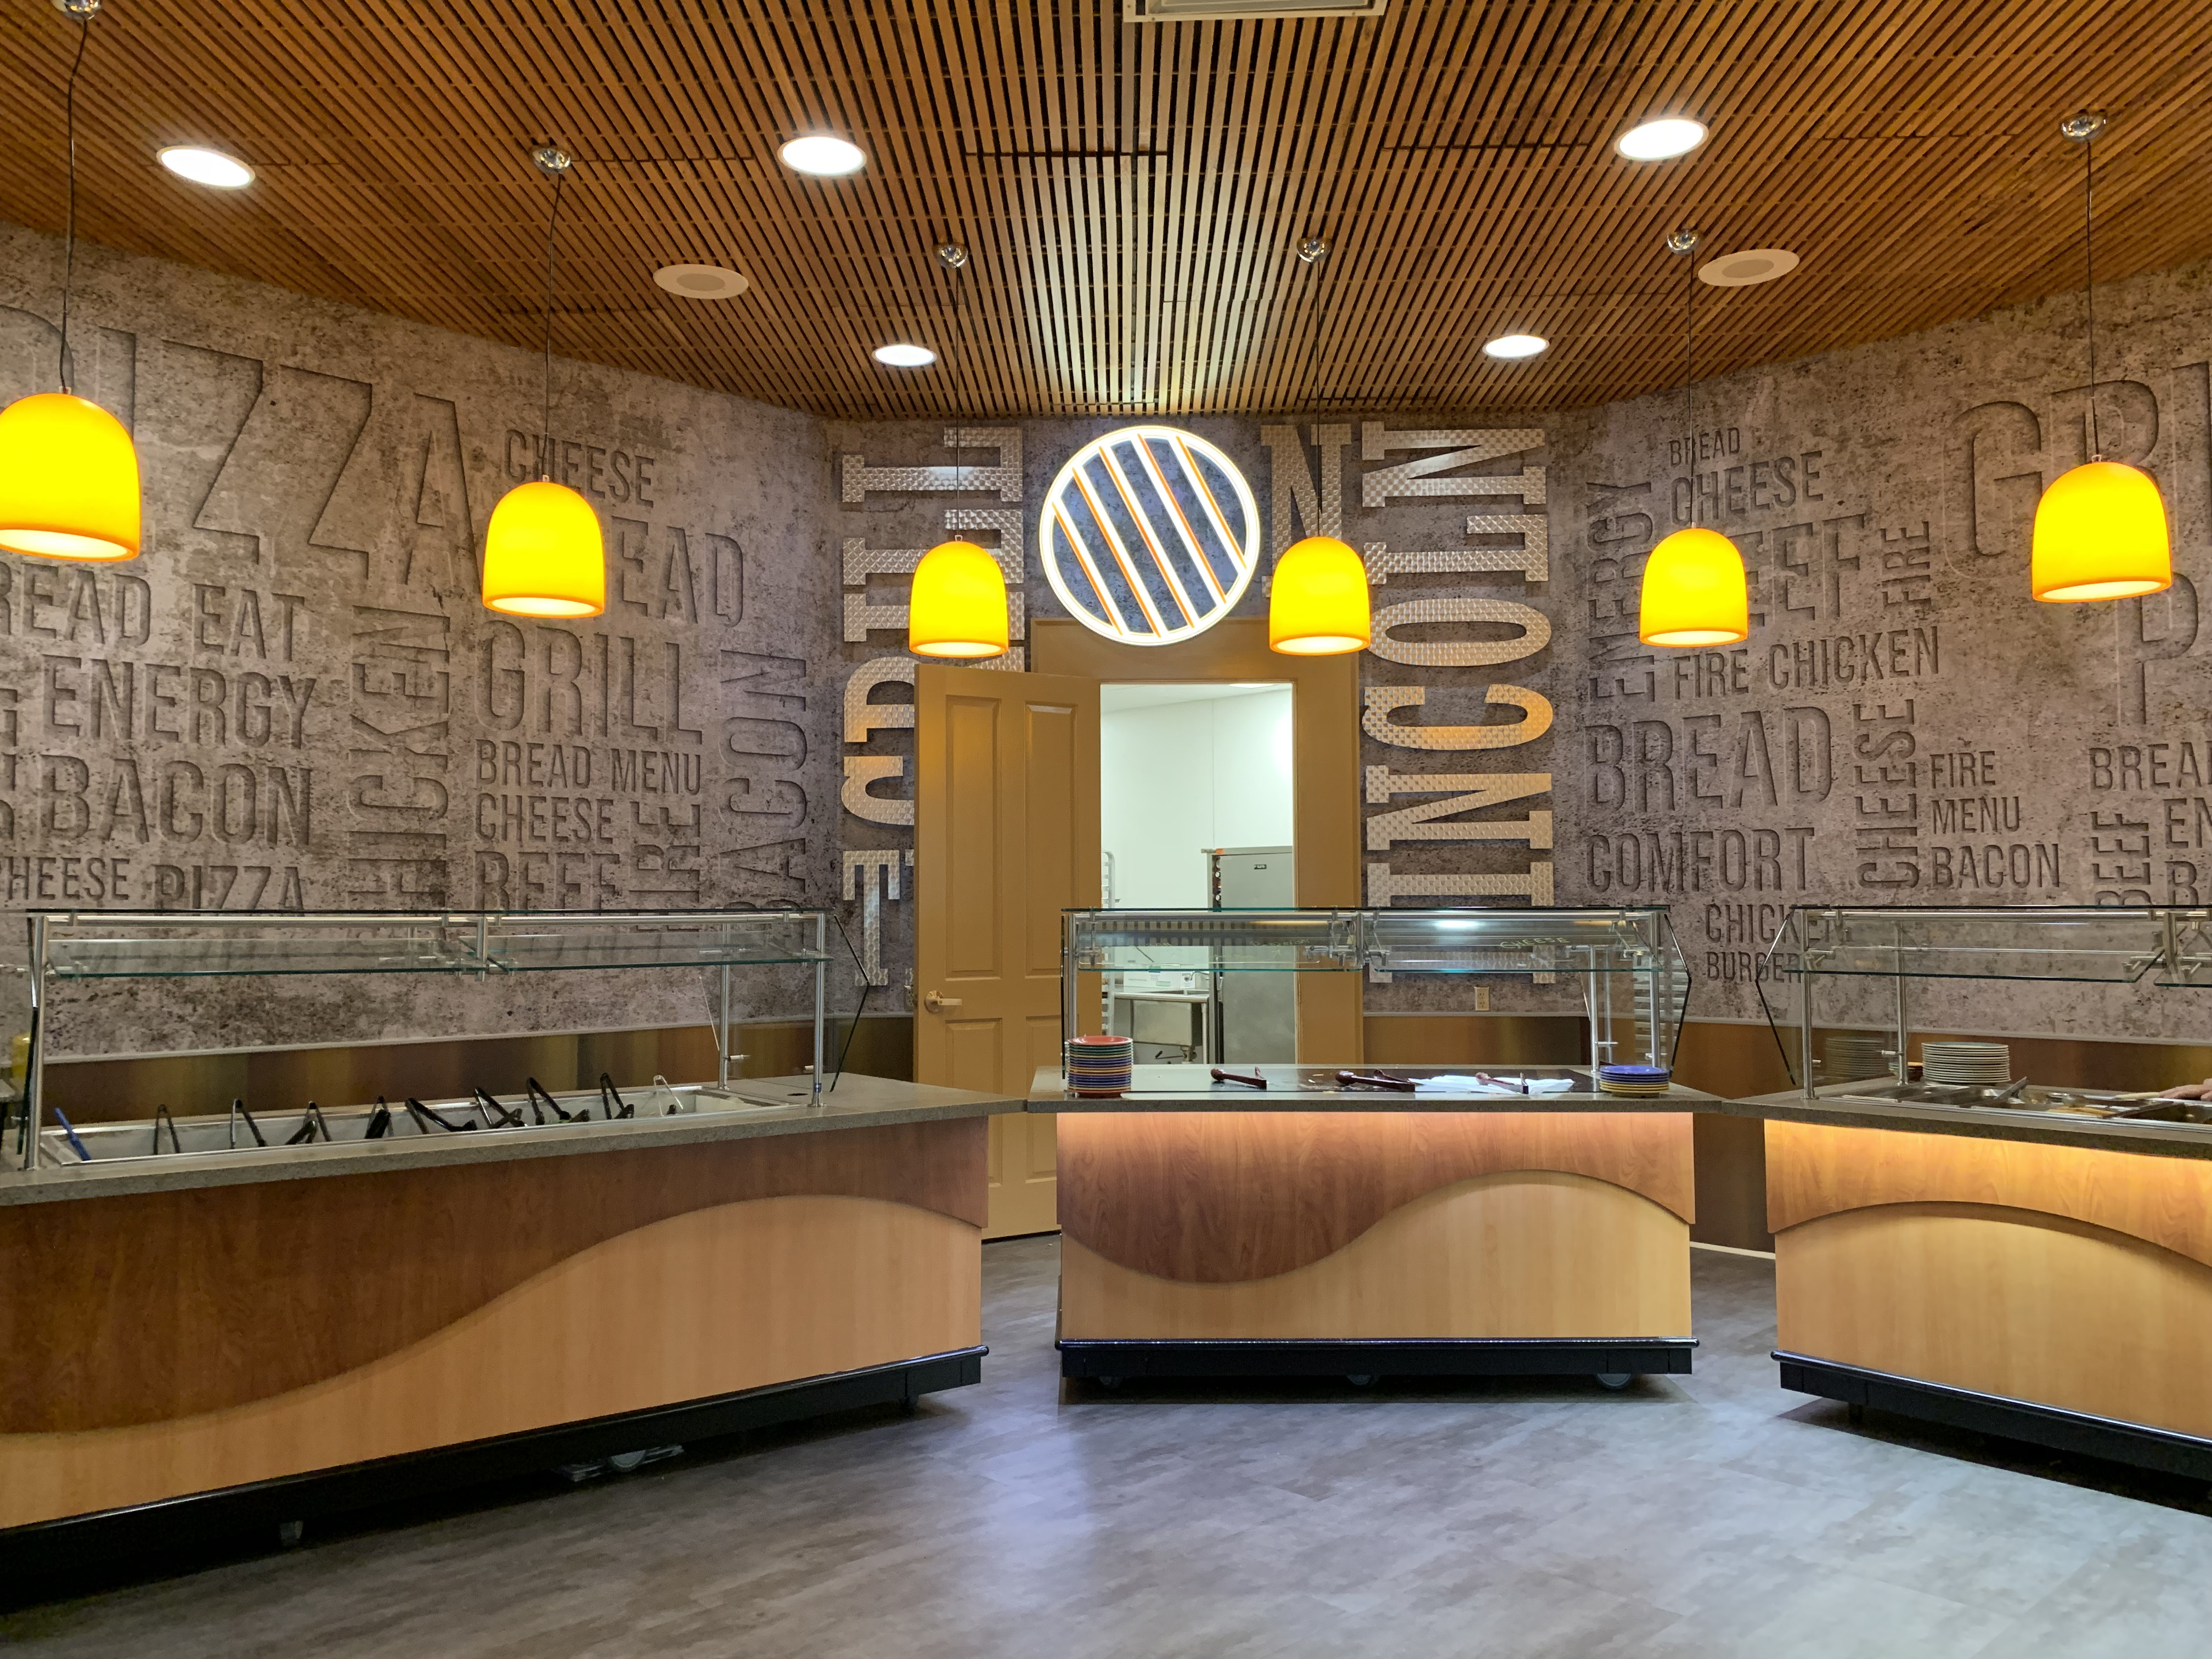 """The Grill has been renamed to """"The Grill on Lincoln"""" and relocated to the Specialty Dining area (Photo Phoebe Doscher/The Gettysburgian)."""